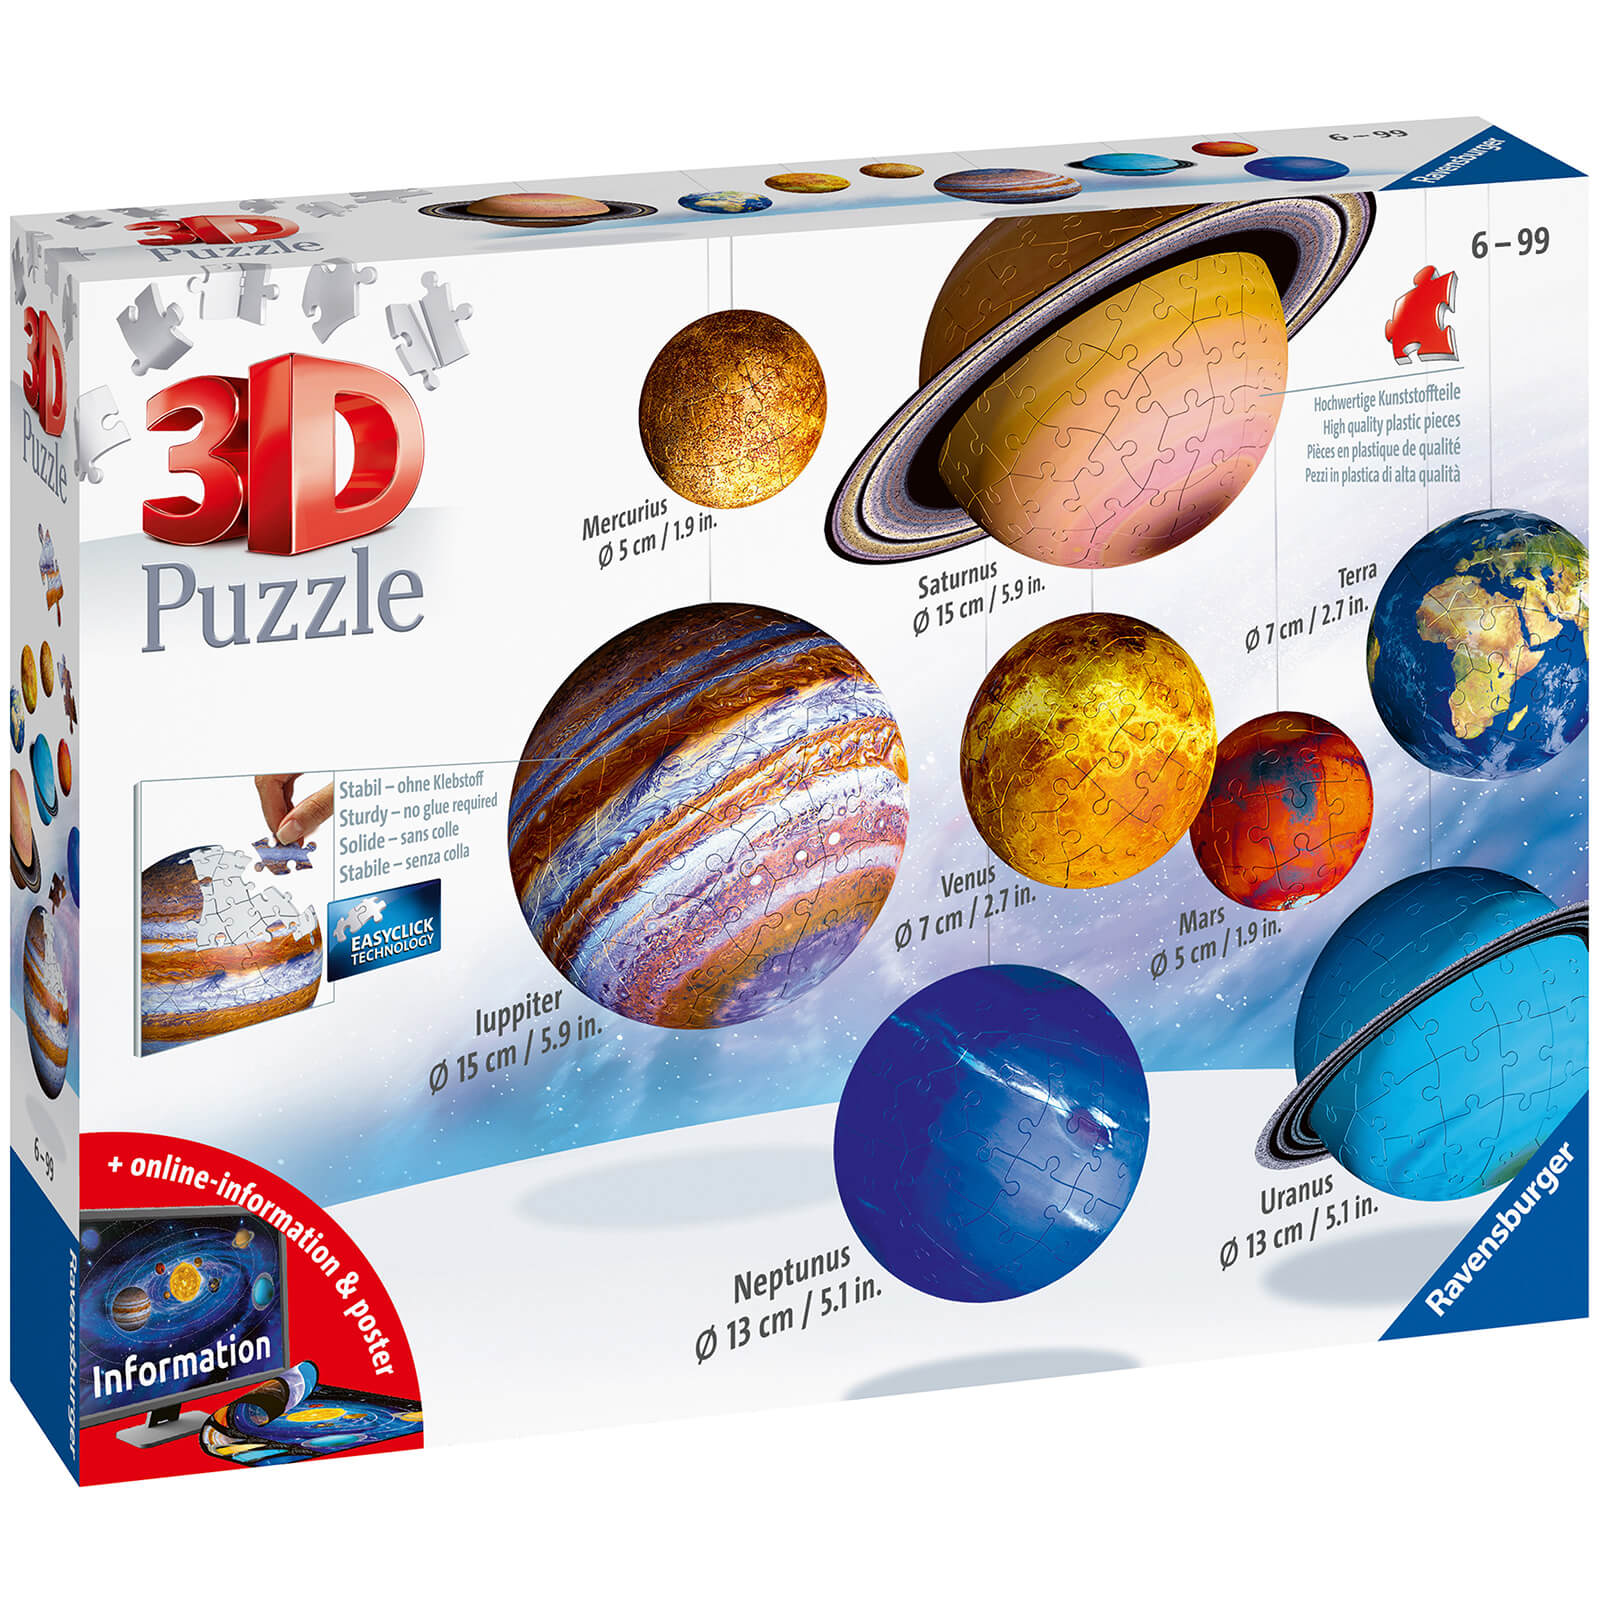 Image of Ravensburger Planetary Solar System 3D Puzzle